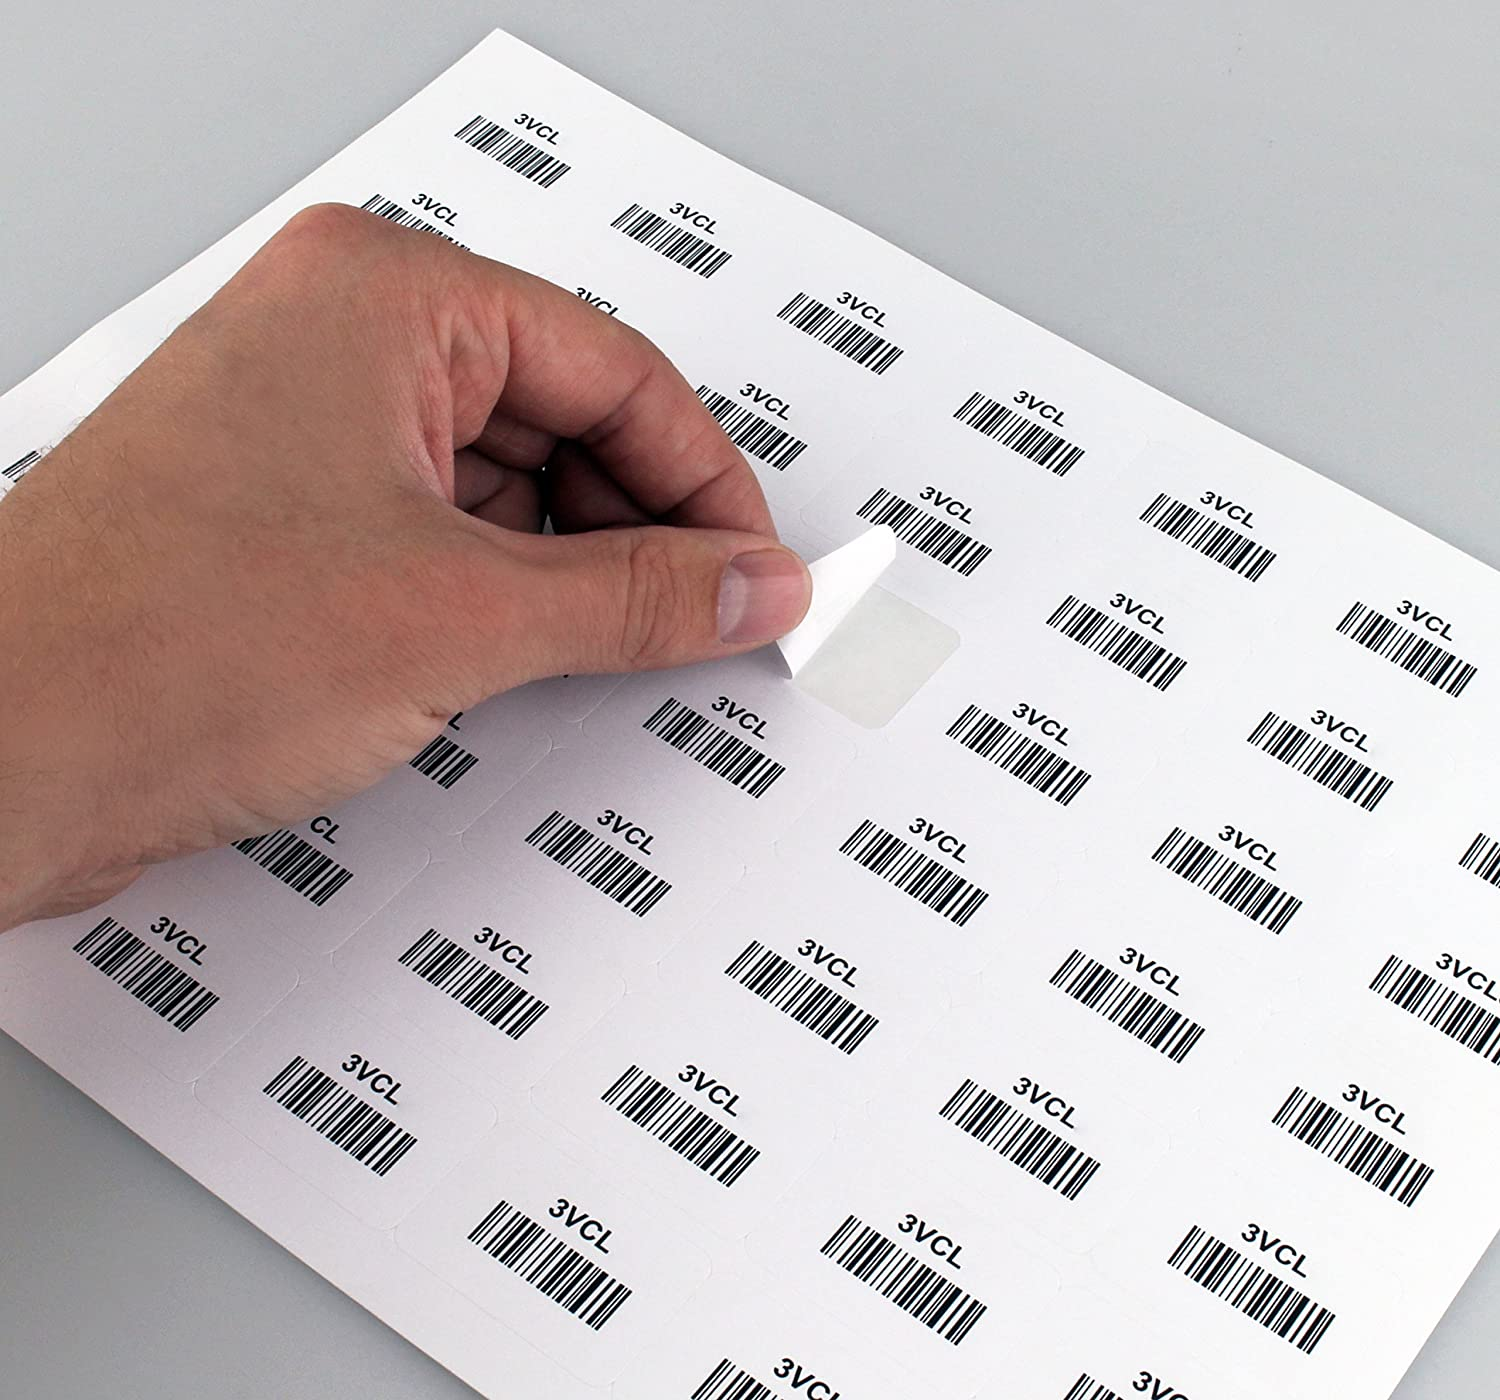 49 Labels//Sheet ChromaLabel 1 x 1-1//2 inch Printable Labels for Laser and Inkjet Printers 25 Sheets